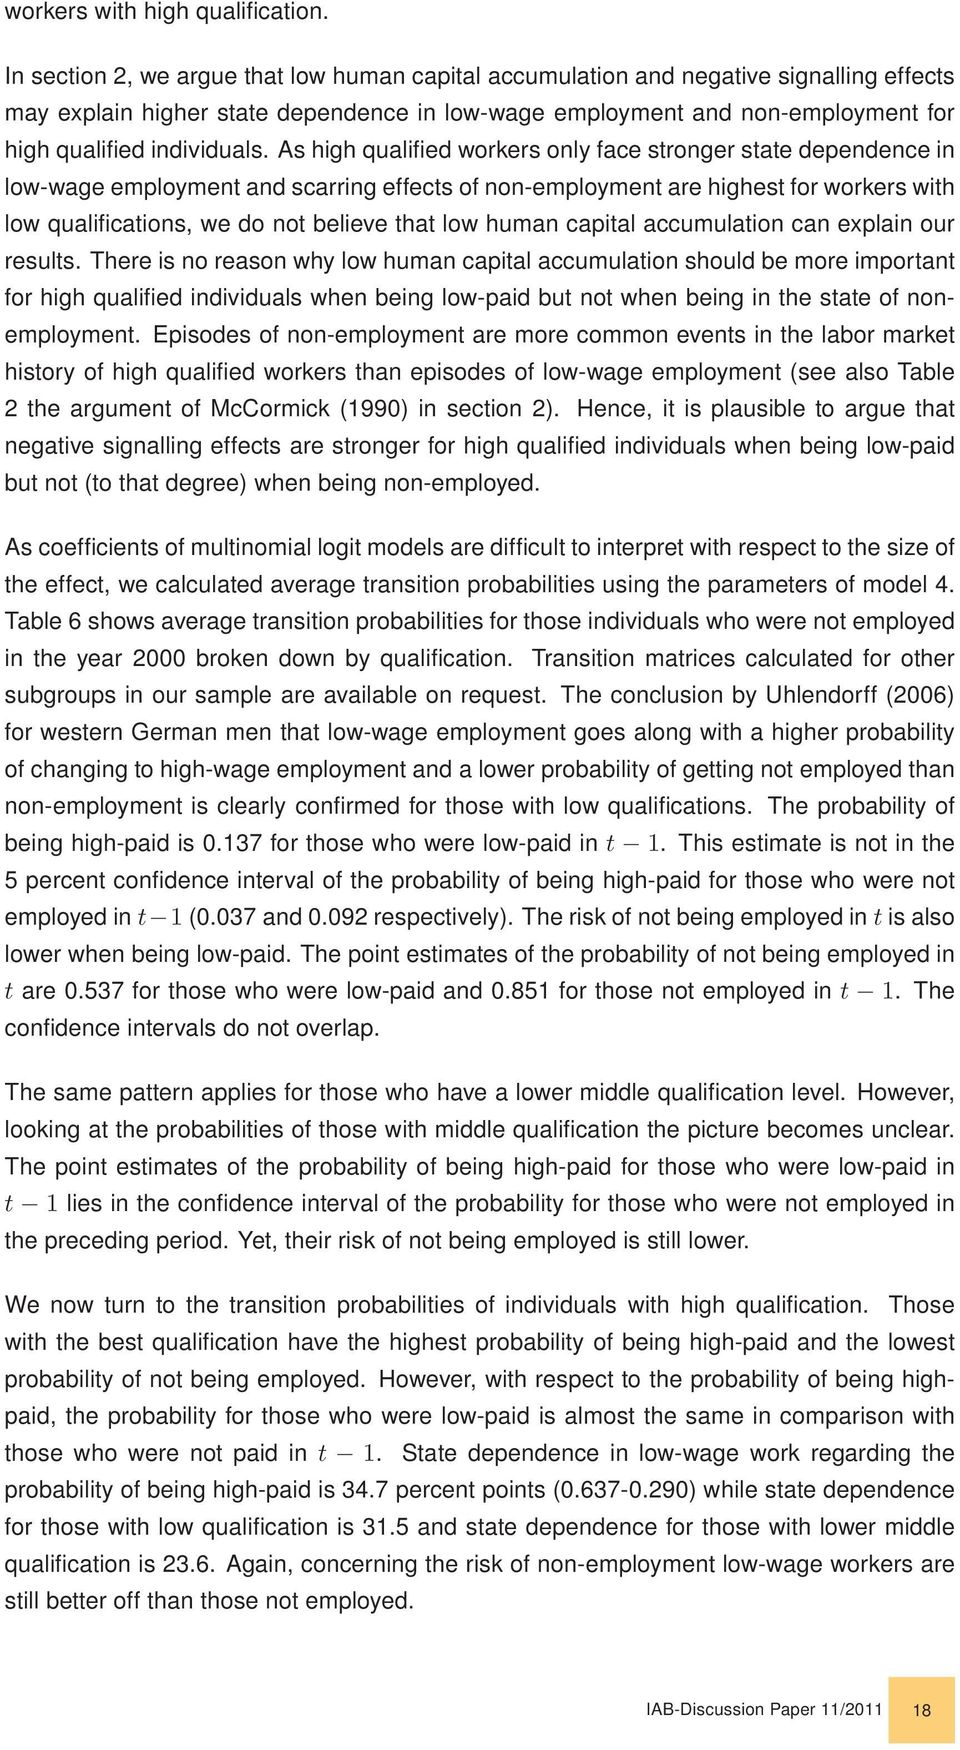 As high qualified workers only face stronger state dependence in low-wage employment and scarring effects of non-employment are highest for workers with low qualifications, we do not believe that low